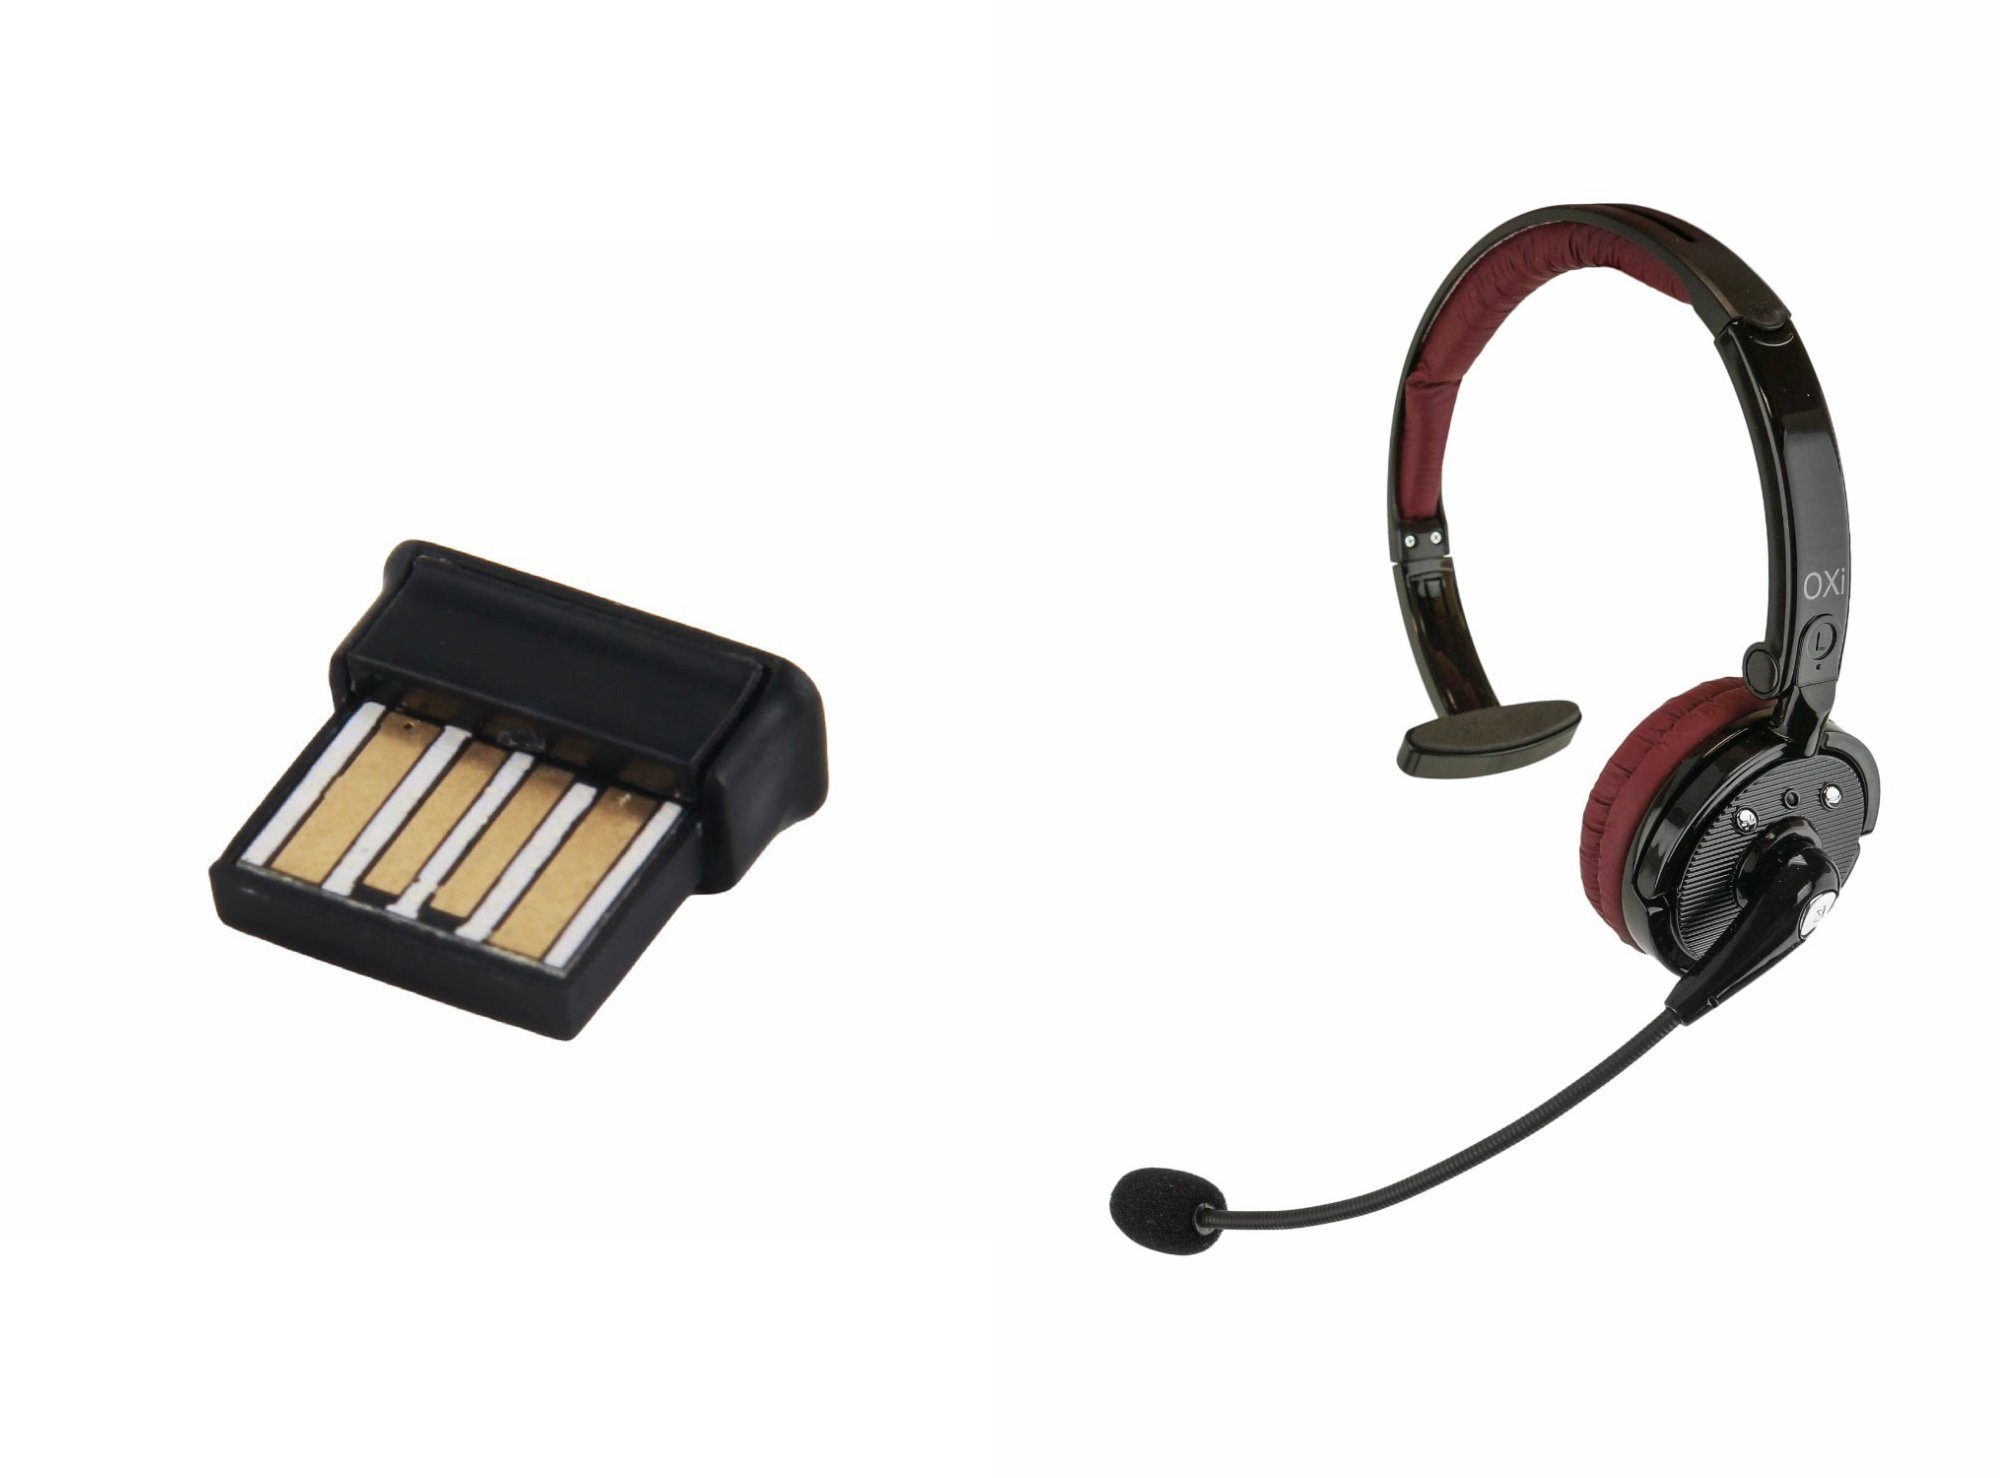 Oxi Wireless Bluetooth Headset and USB Dongle Bundle with Ear Headphones and Plug & Play Network Adapte